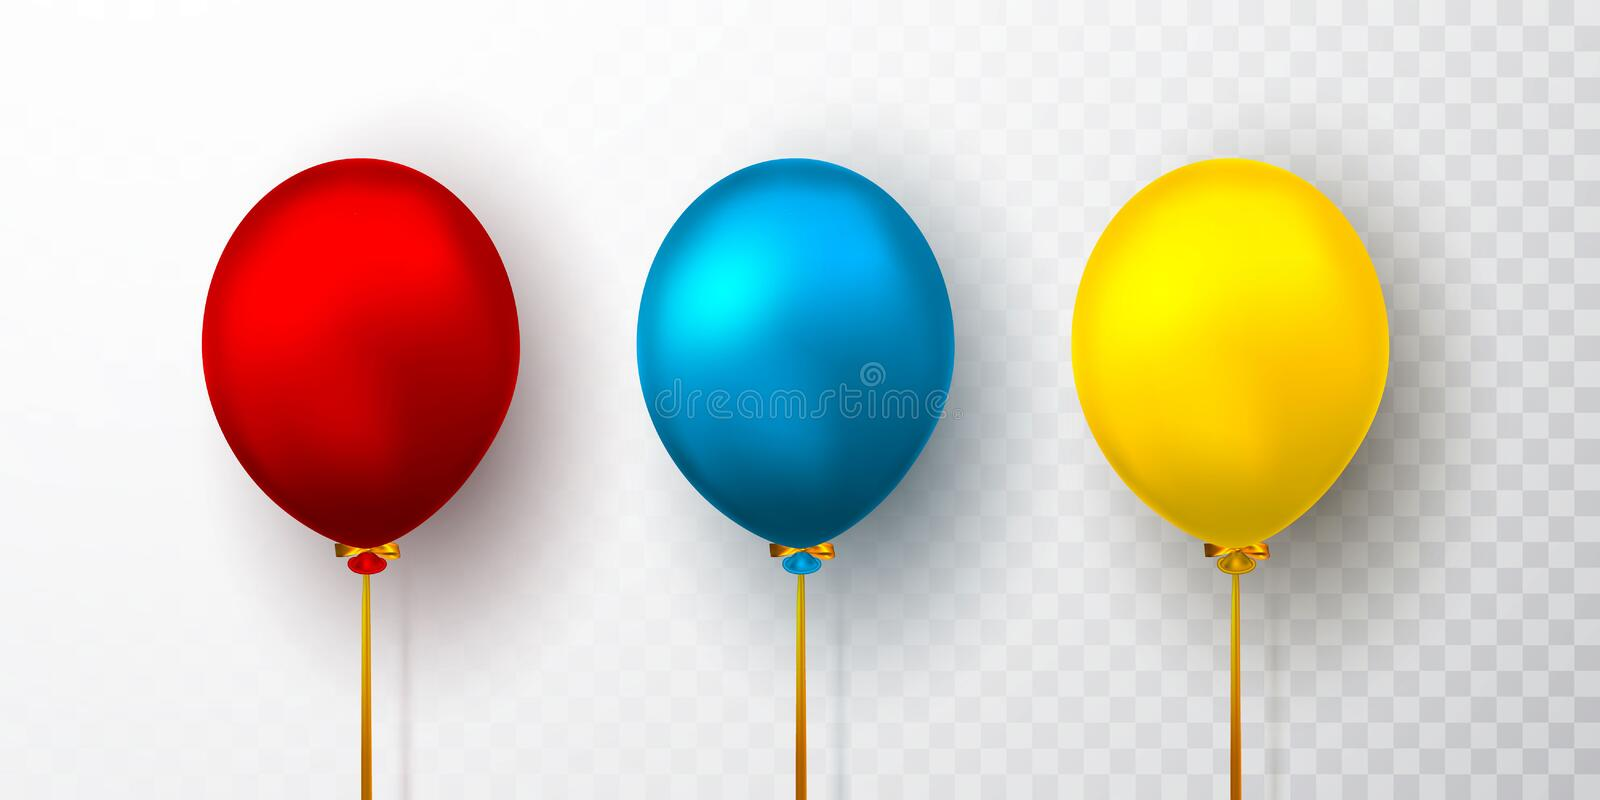 Realistic yellow, red and blue balloons on transparent background with shadow. Shine helium balloon for wedding, Birthday, parties stock illustration